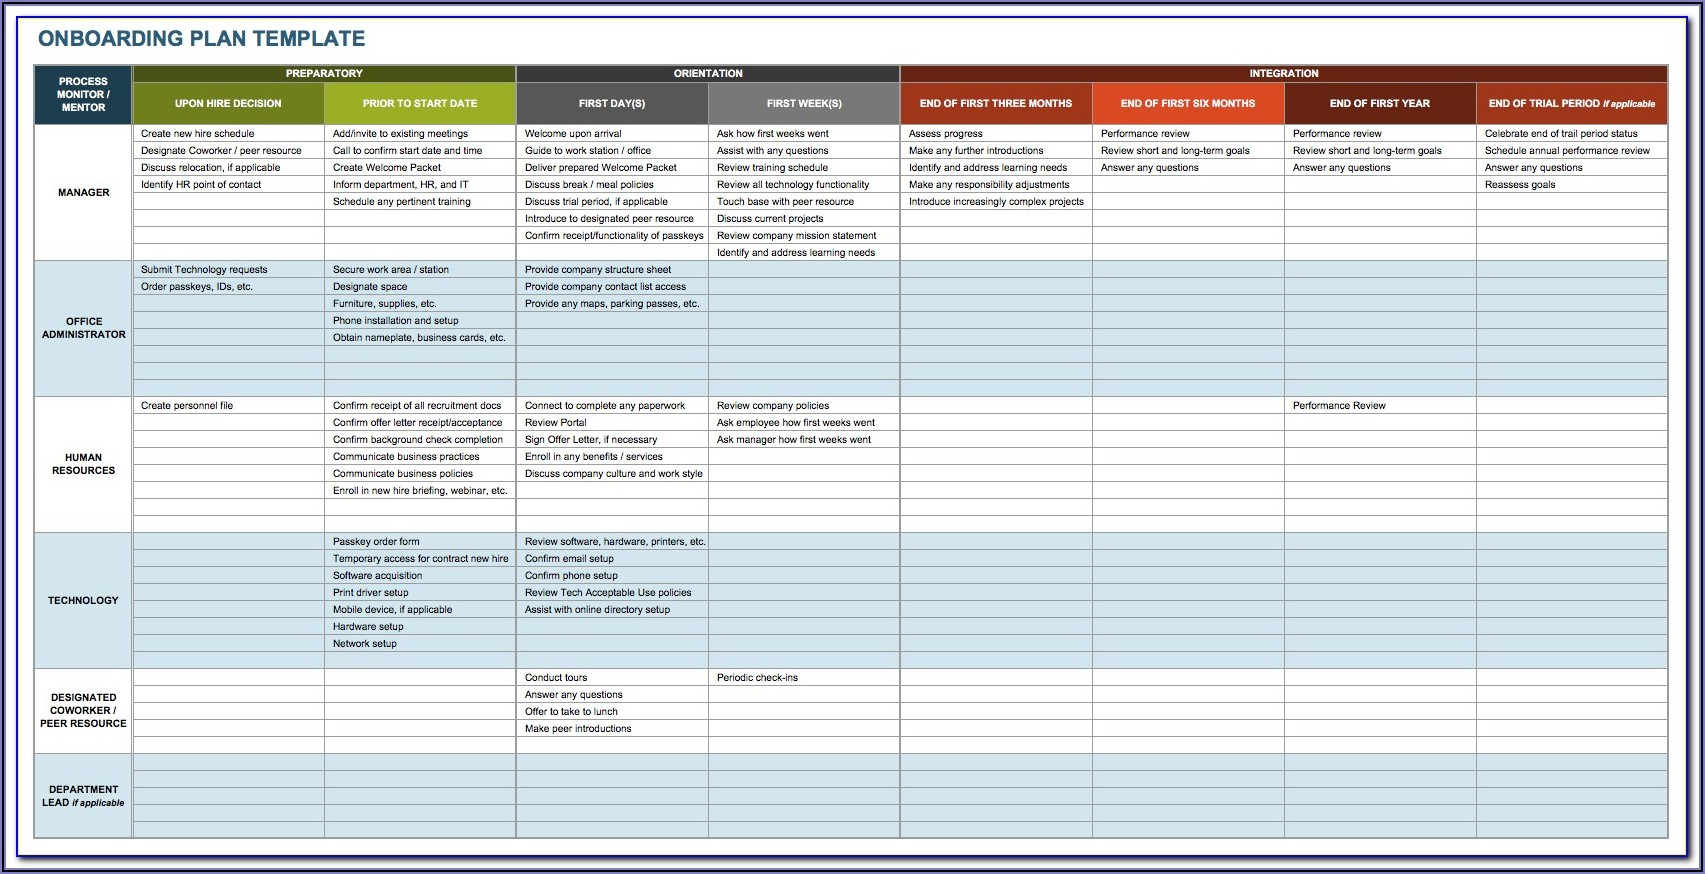 New Hire Onboarding Schedule Template